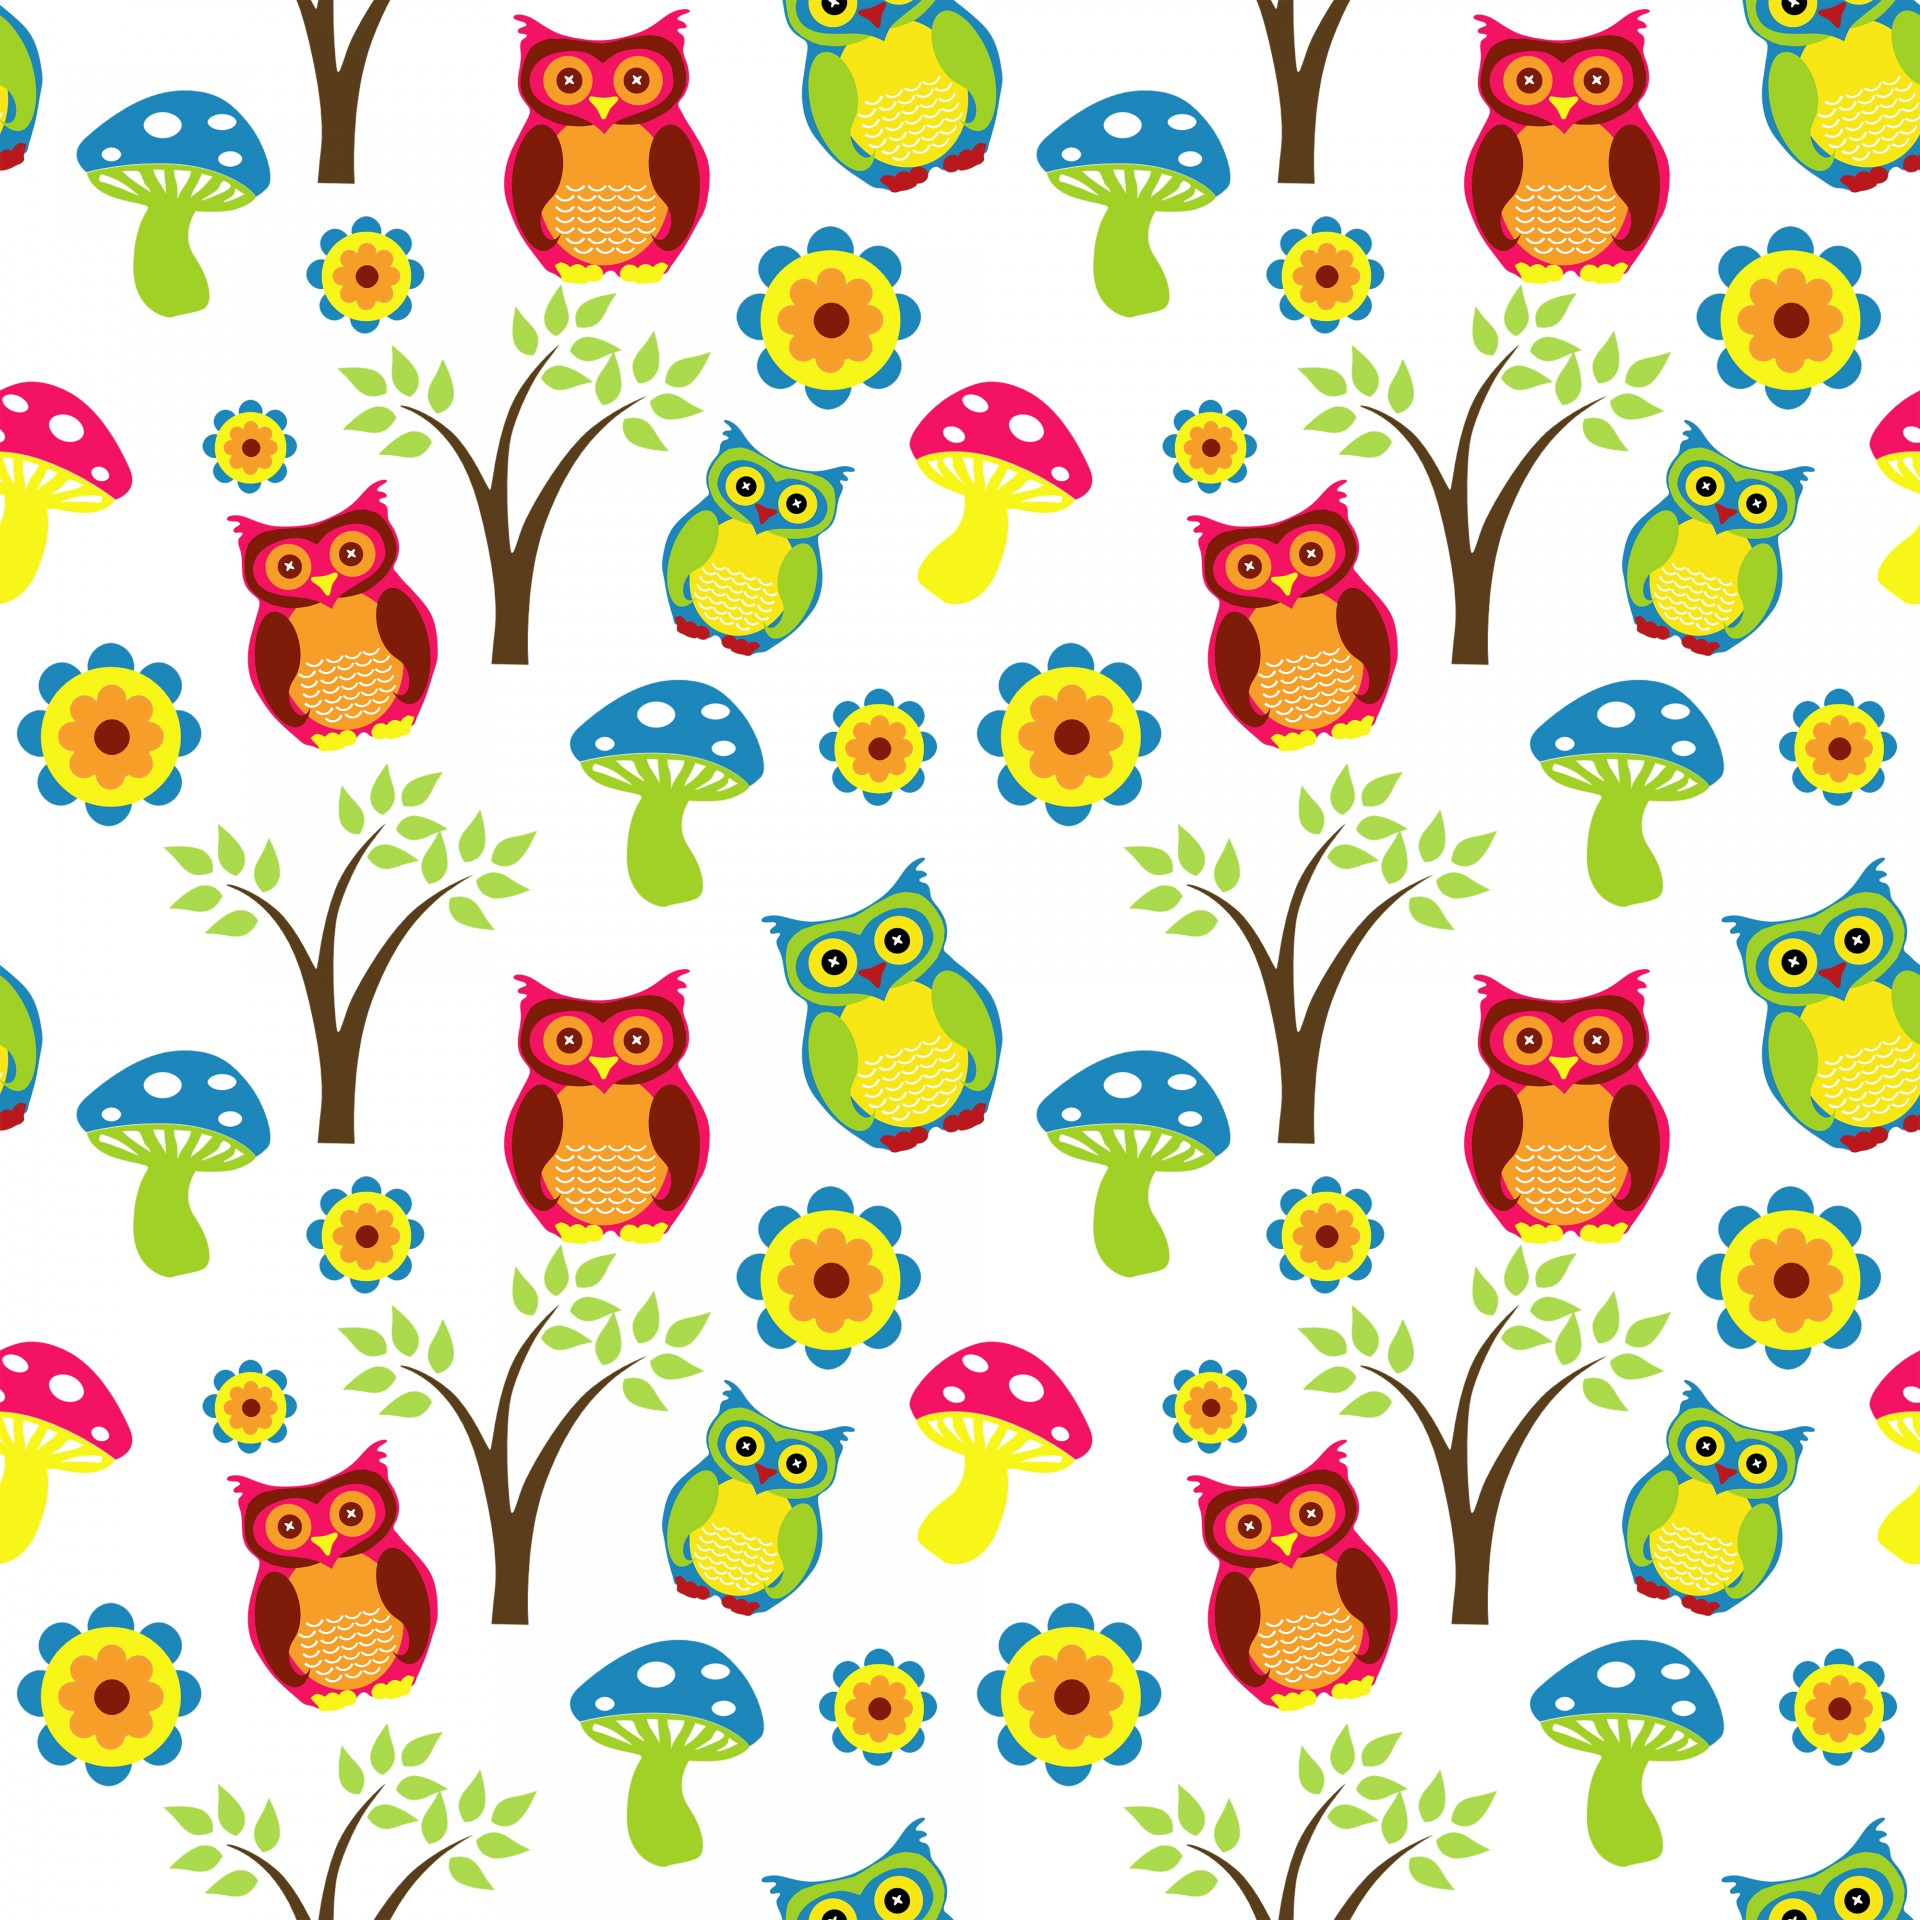 cute-owl-wallpaper-pattern